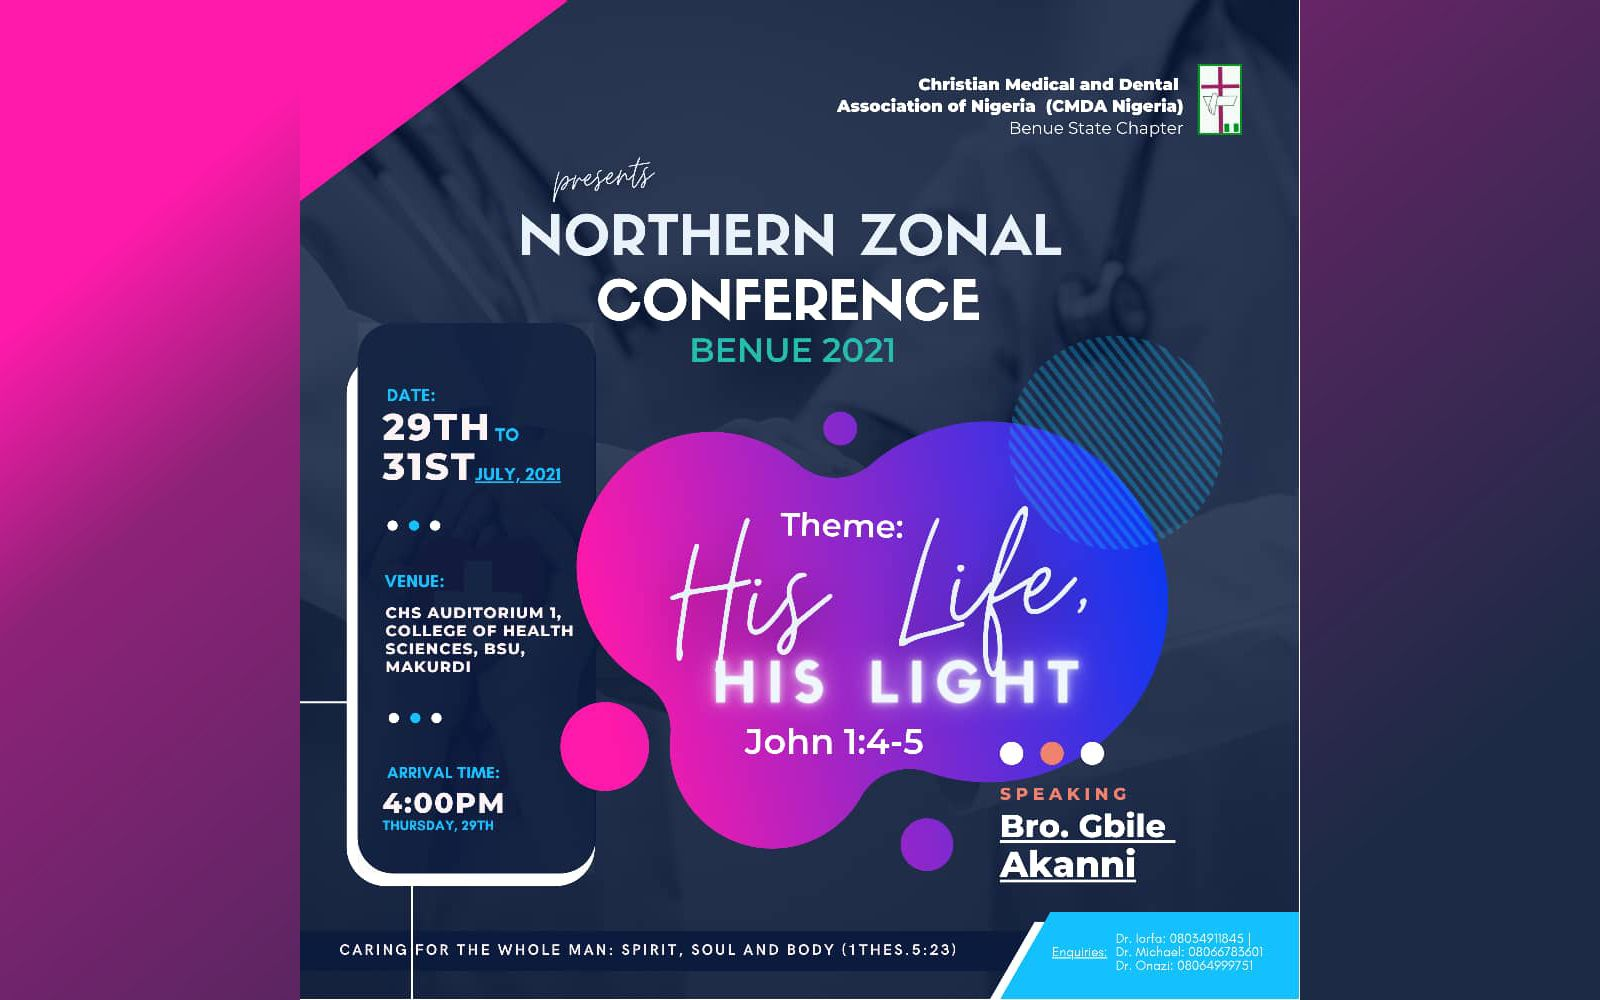 northern zonal conference